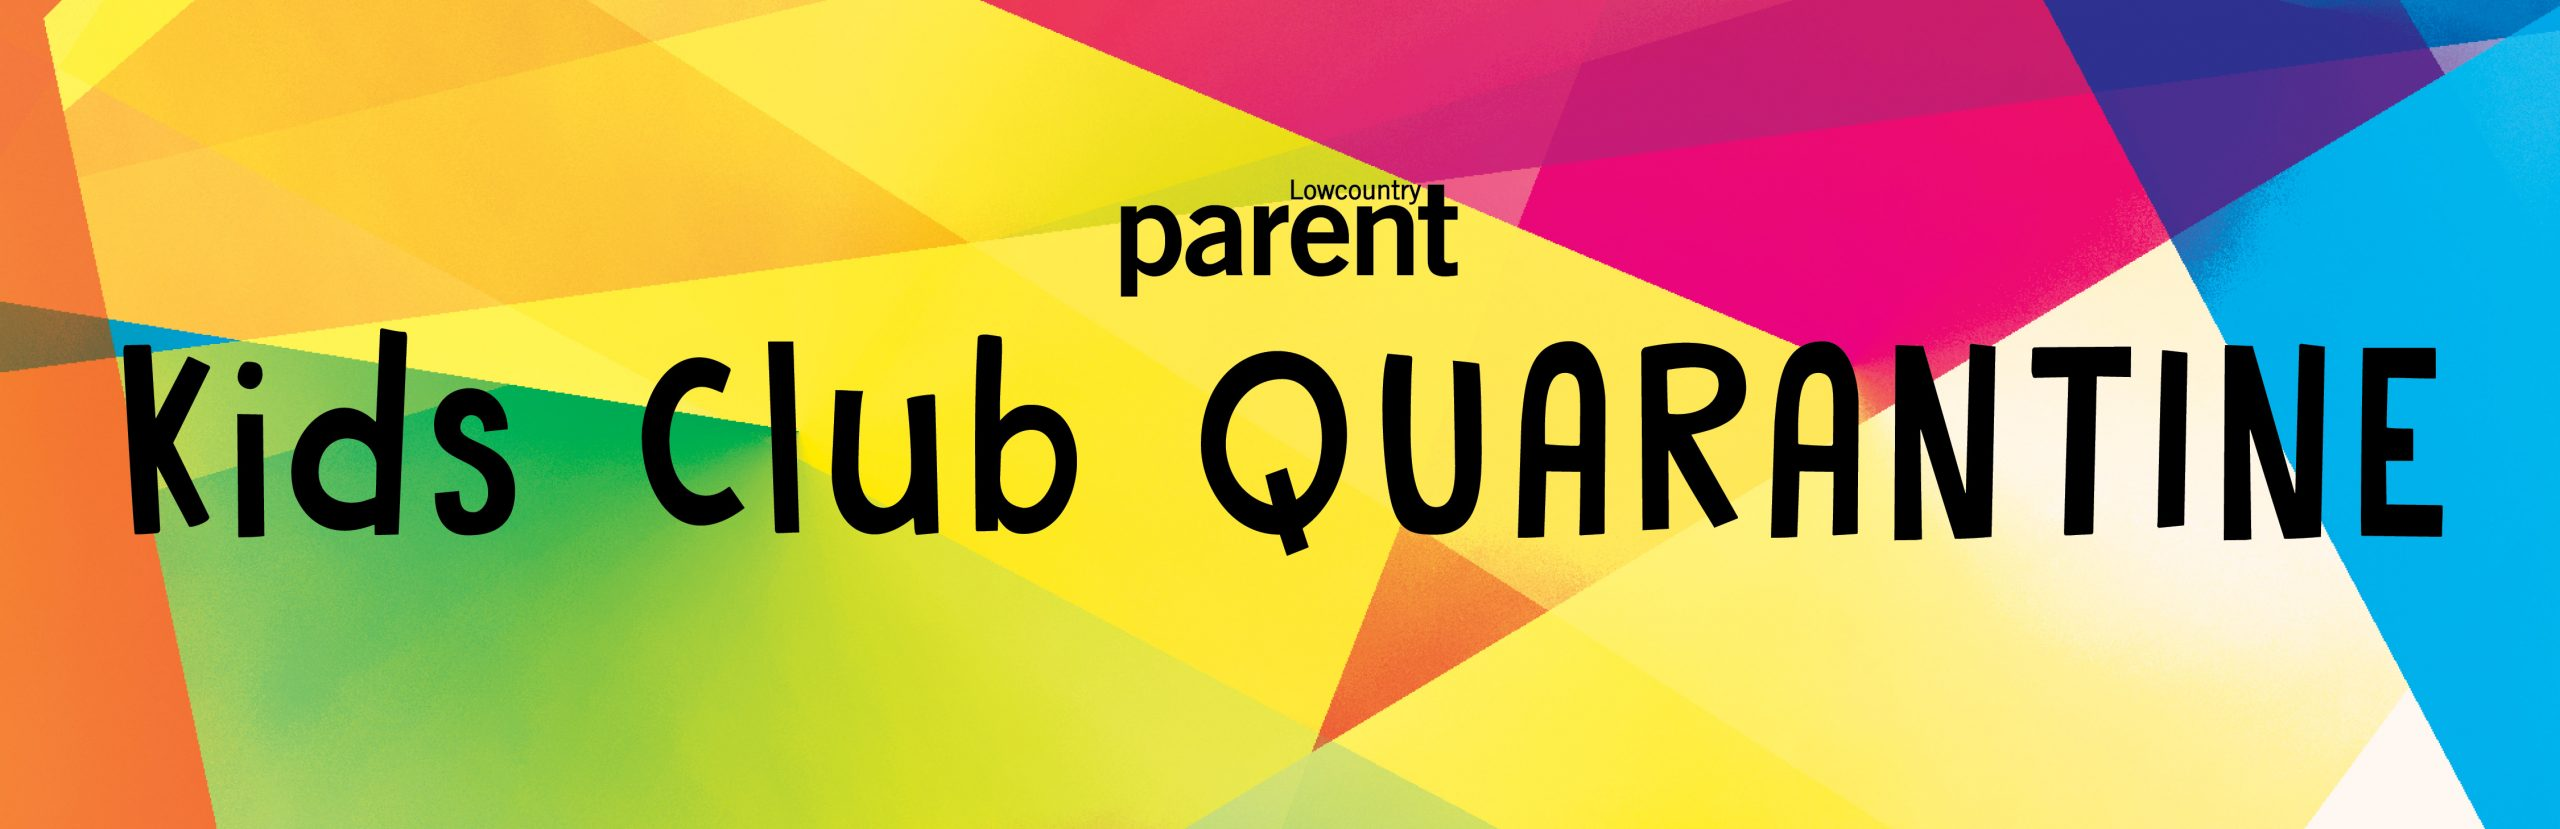 Kids Club Quarantine